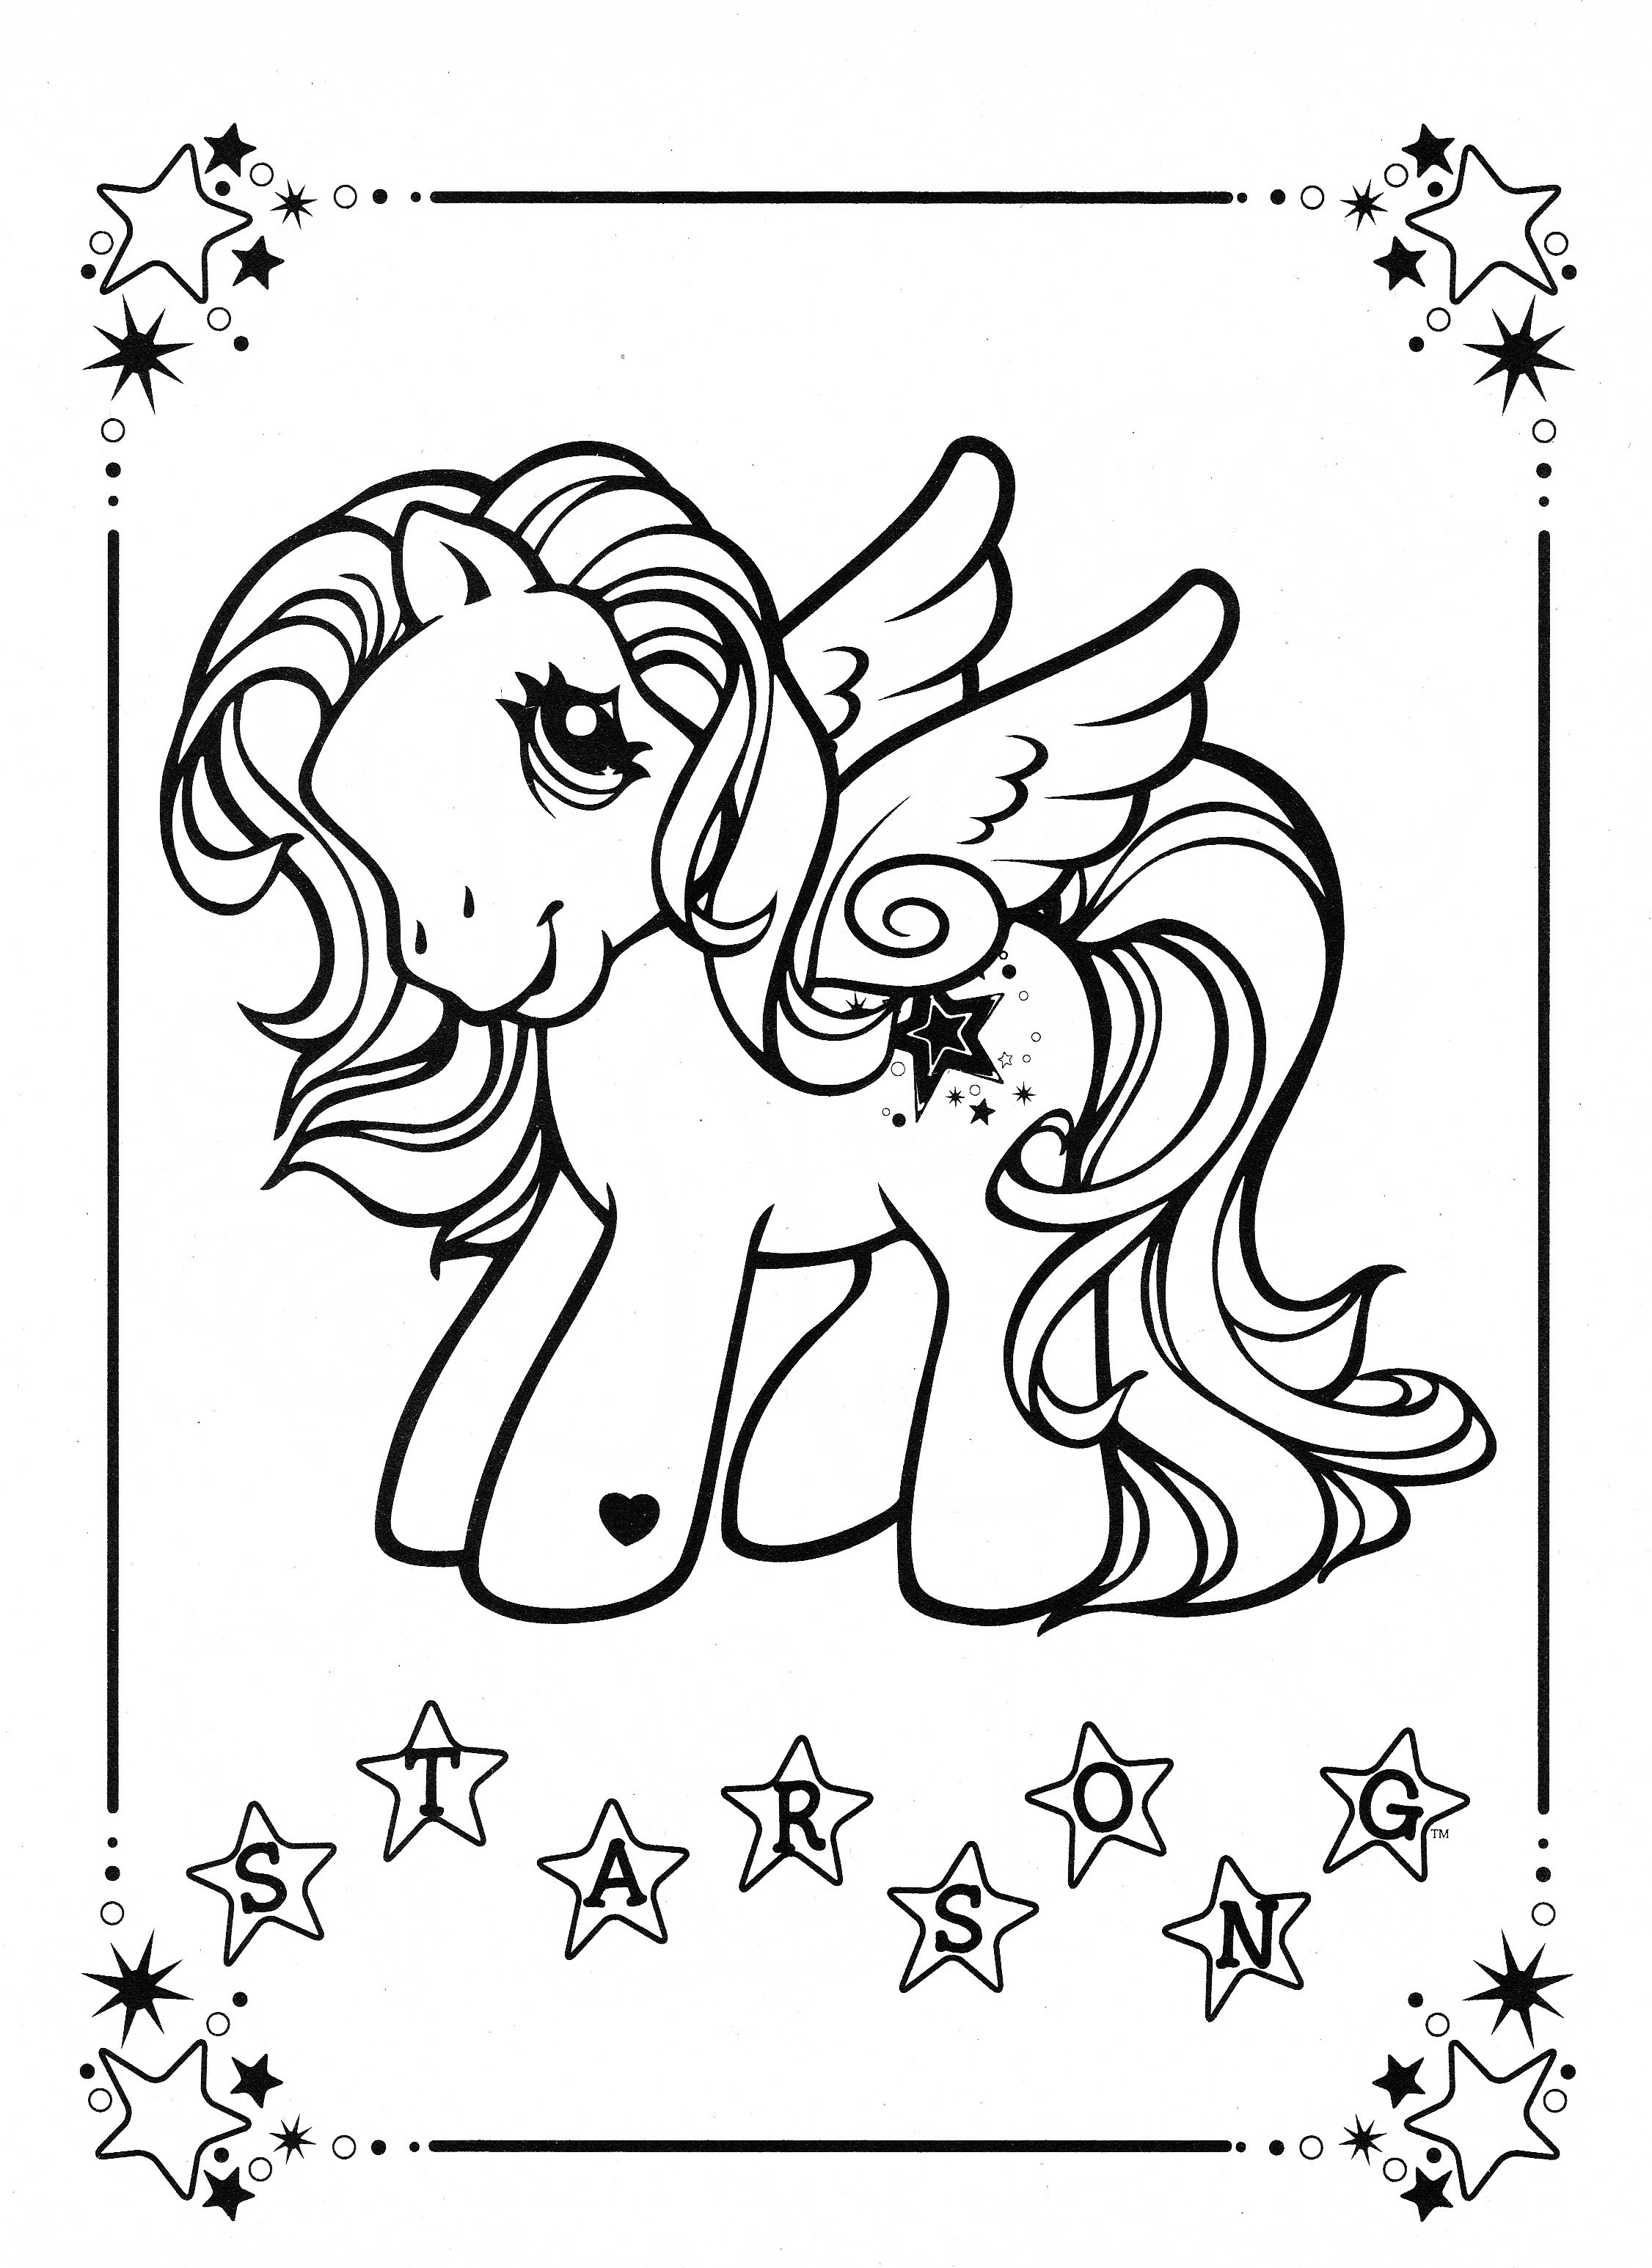 My Little Pony Coloring Page Mlp Star Song My Little Pony Coloring Cool Coloring Pages Horse Coloring Pages